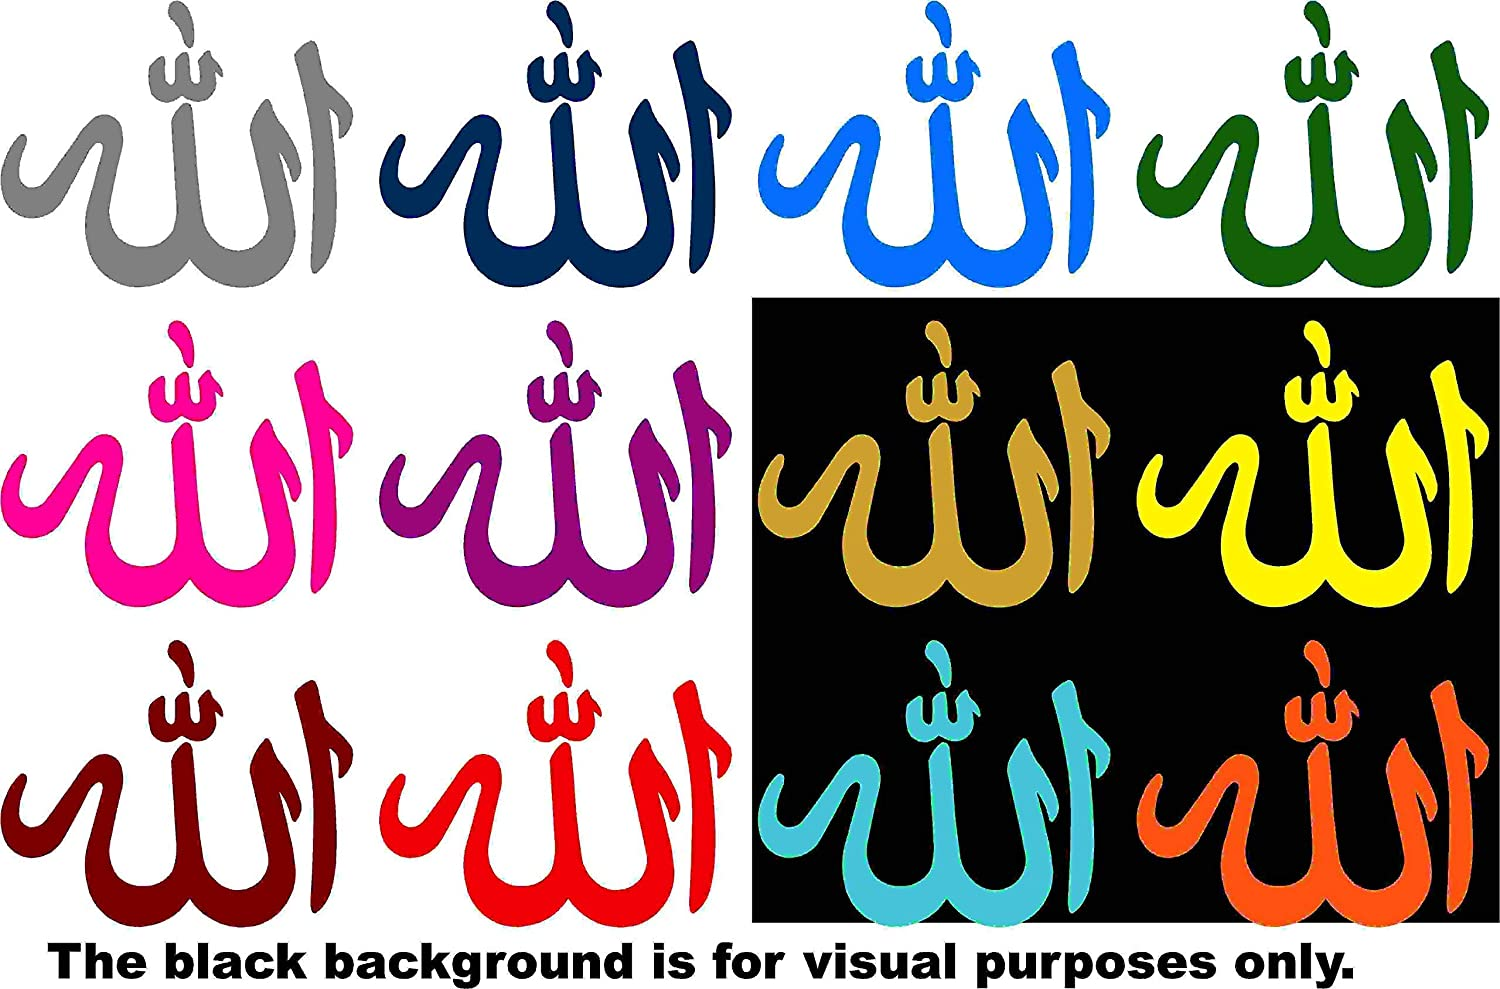 Allah Arabic God Symbol Car Window Tumblers Wall Decal Sticker Vinyl Laptops Cellphones Phones Tablets Ipads Helmets Motorcycles Computer Towers V and T Gifts